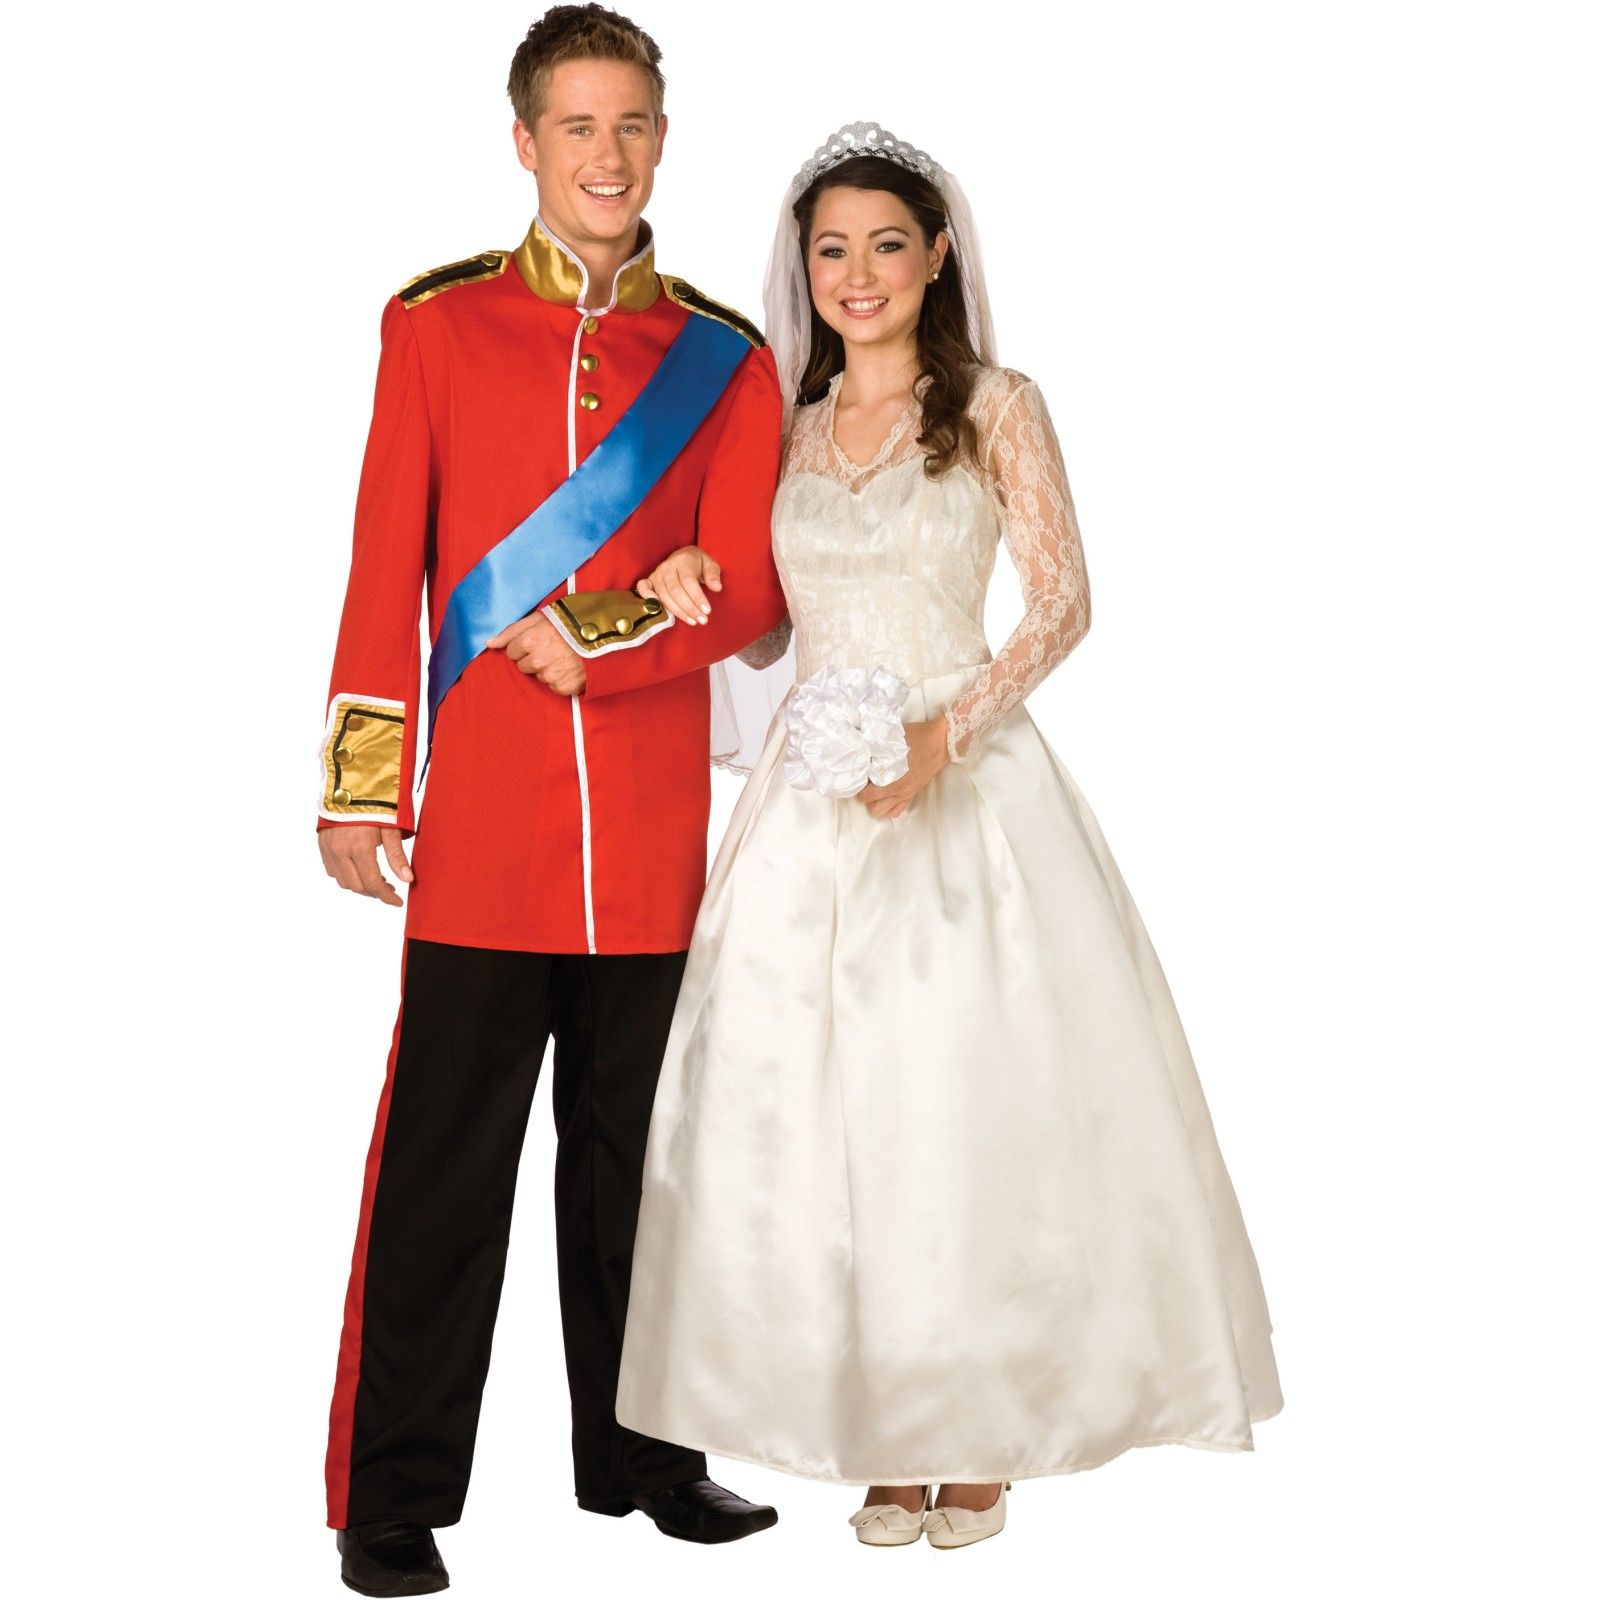 Royal wedding costume keep calm and carry on